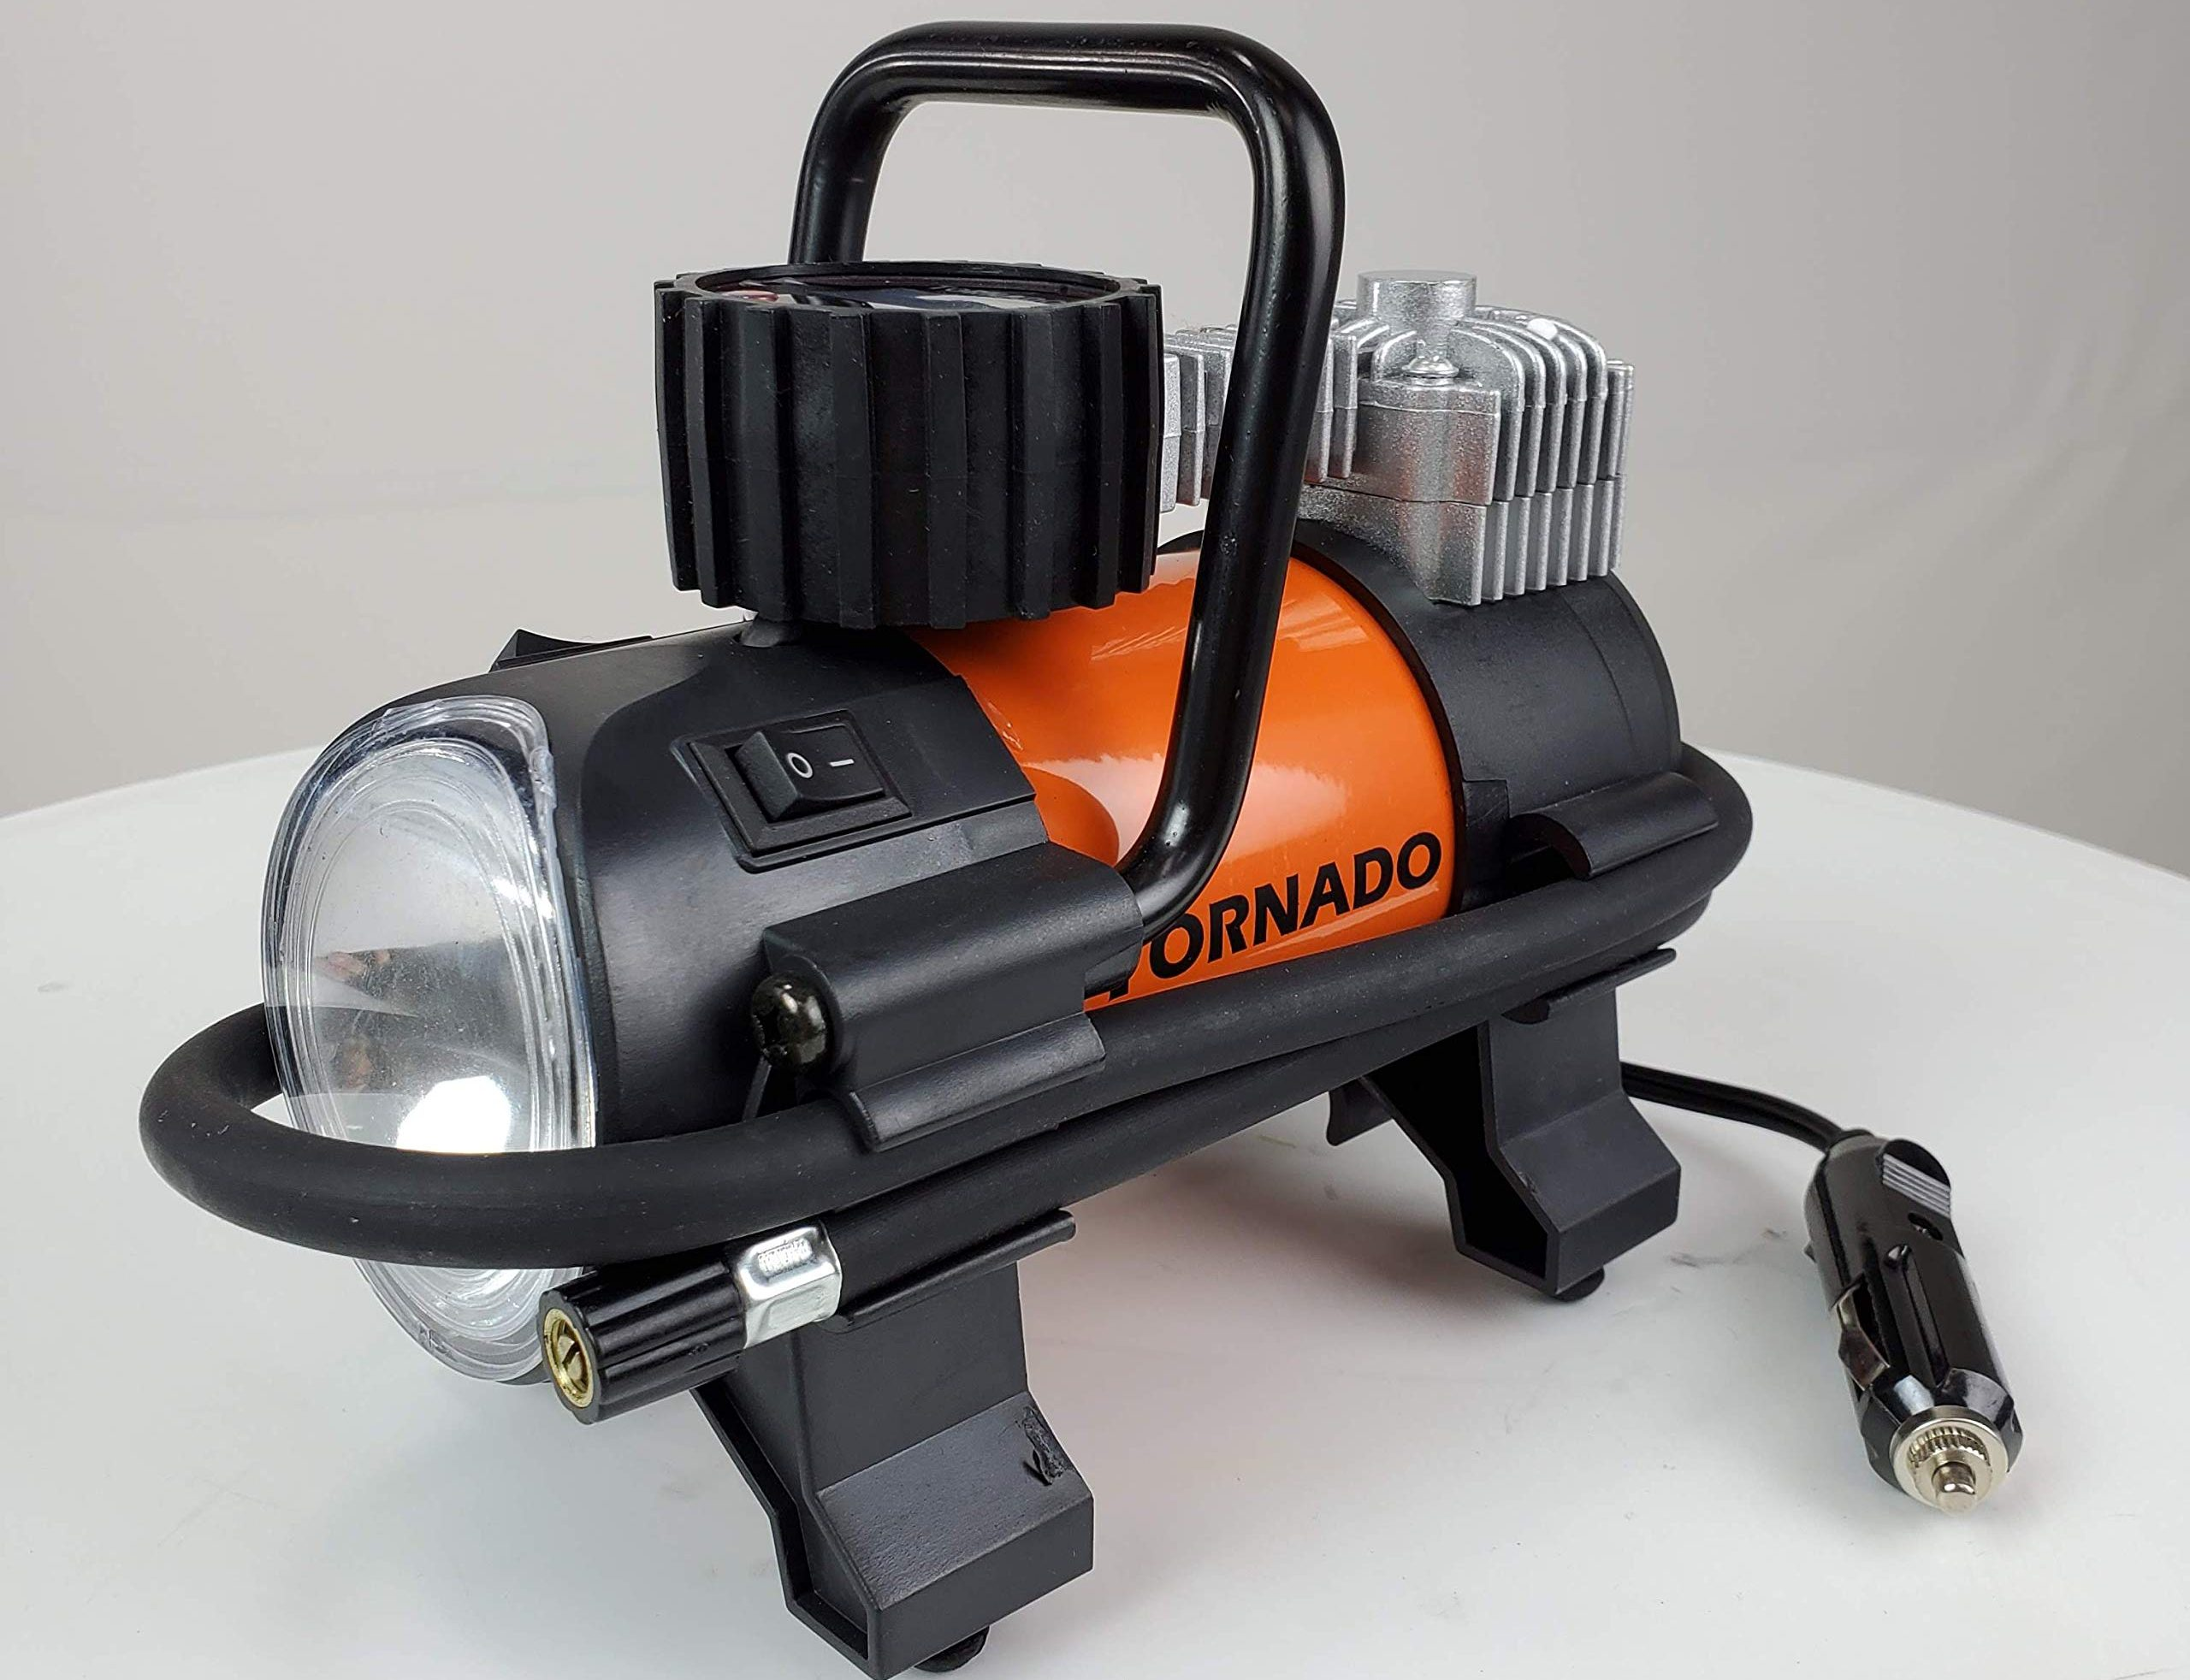 Things to Consider When Buying an Air Compressor For Car Painting